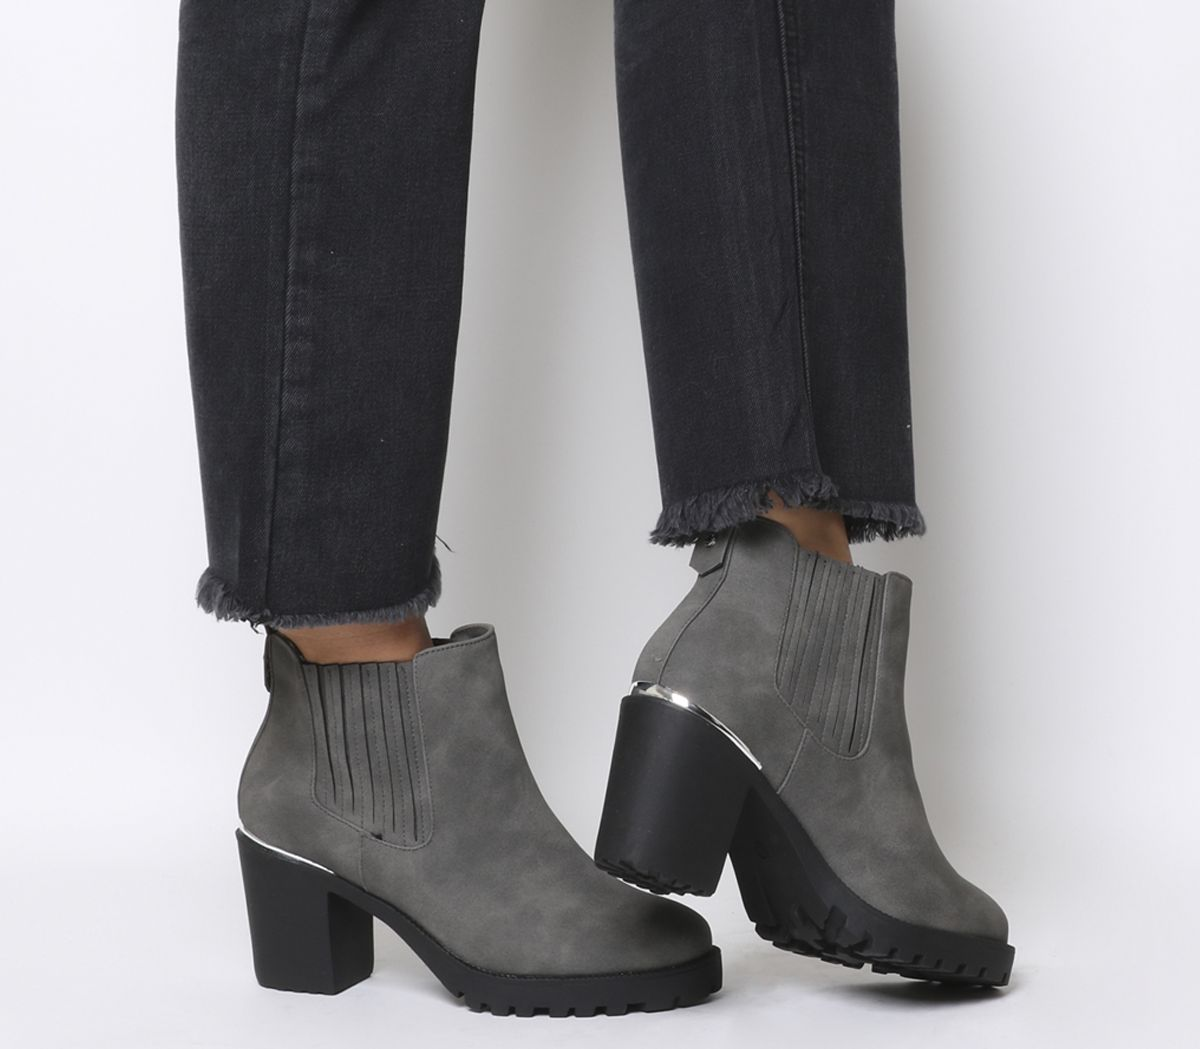 44a0004c6a7e Office Agile Chunky Chelsea Boots Grey - Womens Chelsea Boots